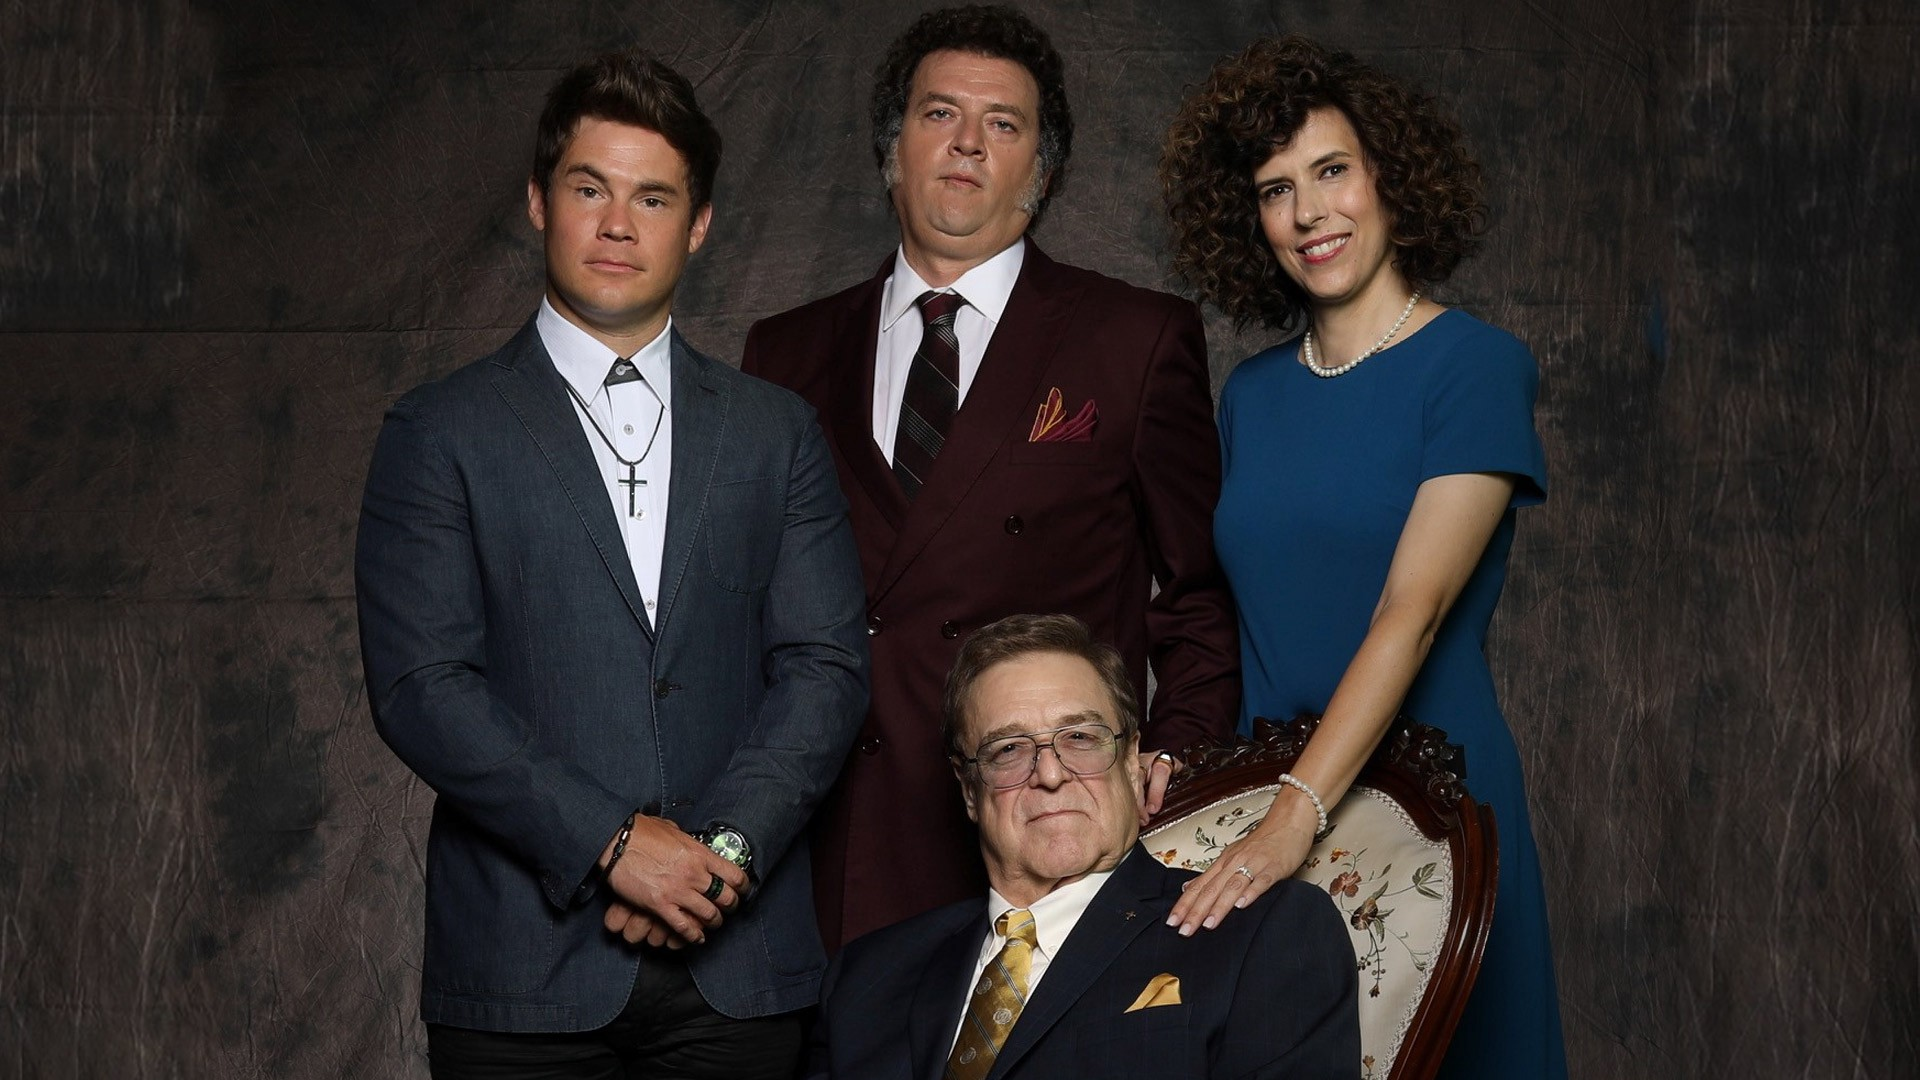 The Righteous Gemstones Episode 1 The Righteous